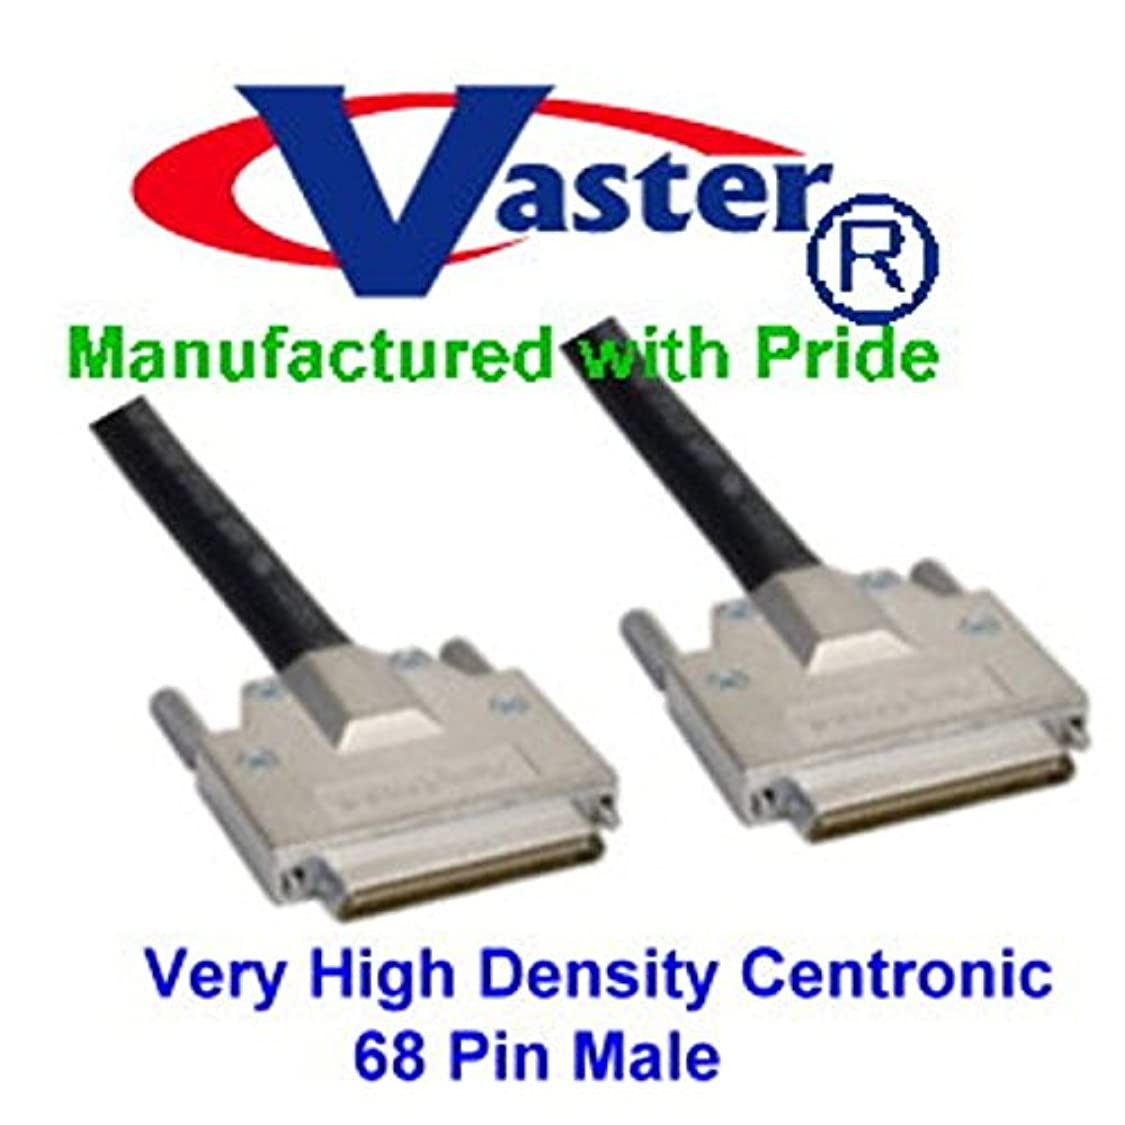 SuperEcable - SCSI Cable, VHDCI SCSI (SCSI-5) LVD/SE Cable - .8mm 68-pin VHDCI Male to Male (6 Ft) zl00306892650060